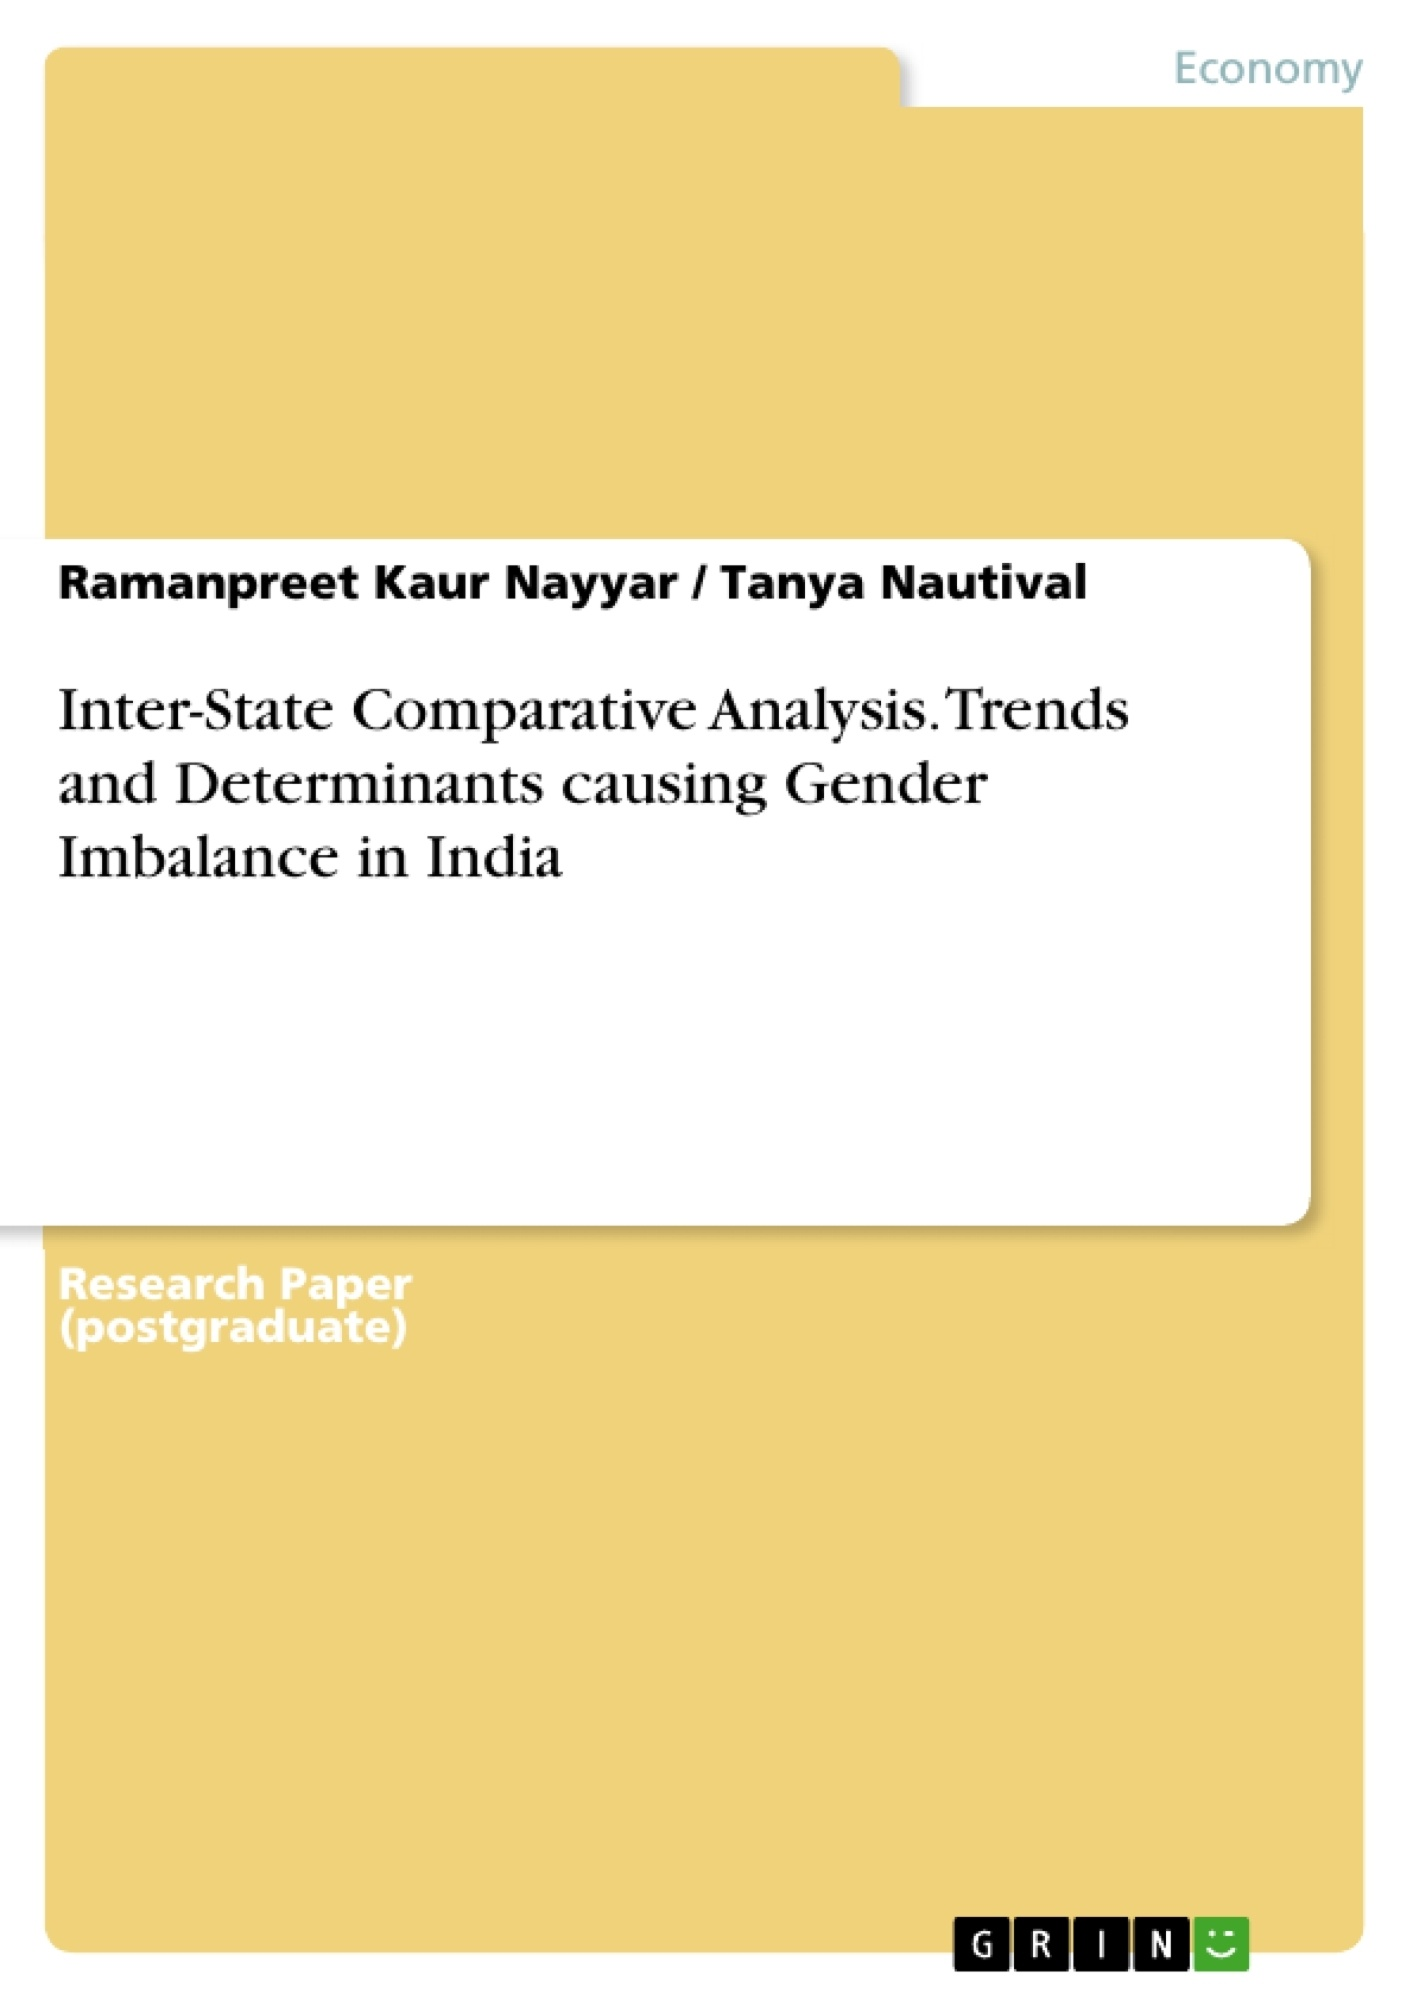 Title: Inter-State Comparative Analysis. Trends and Determinants causing Gender Imbalance in India